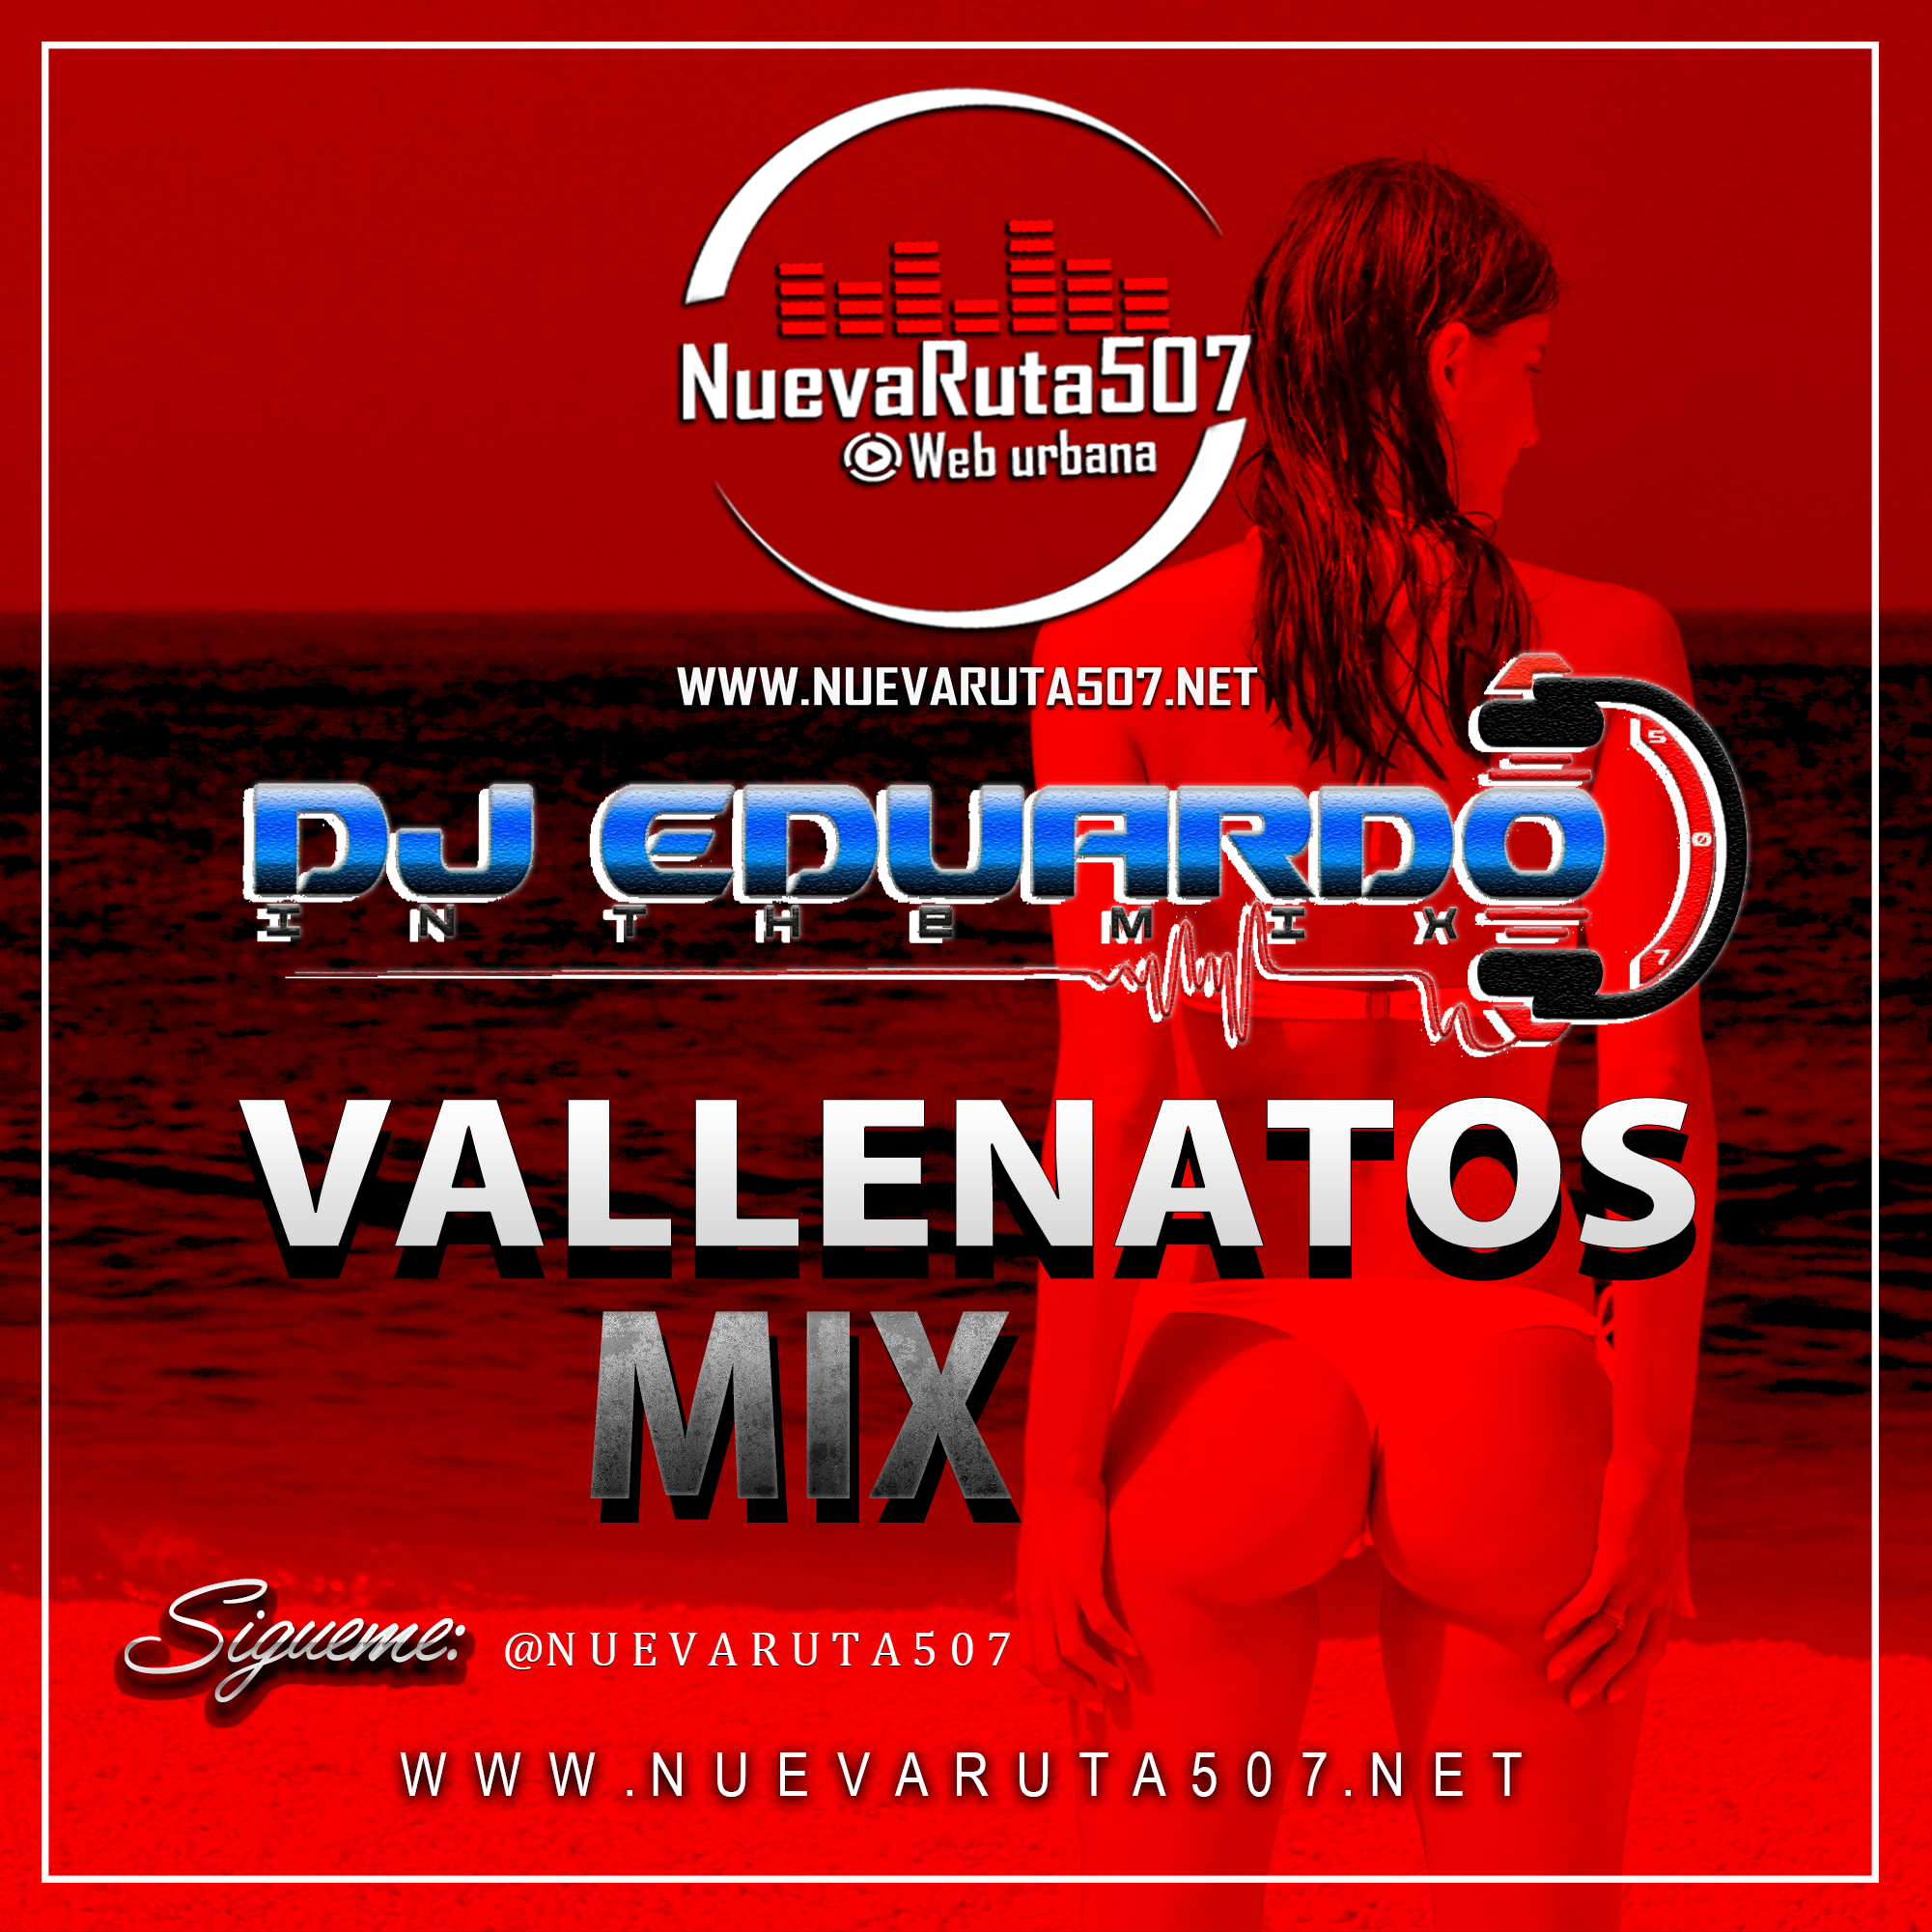 @DjEduardo507 - Vallenatos Mix.mp3